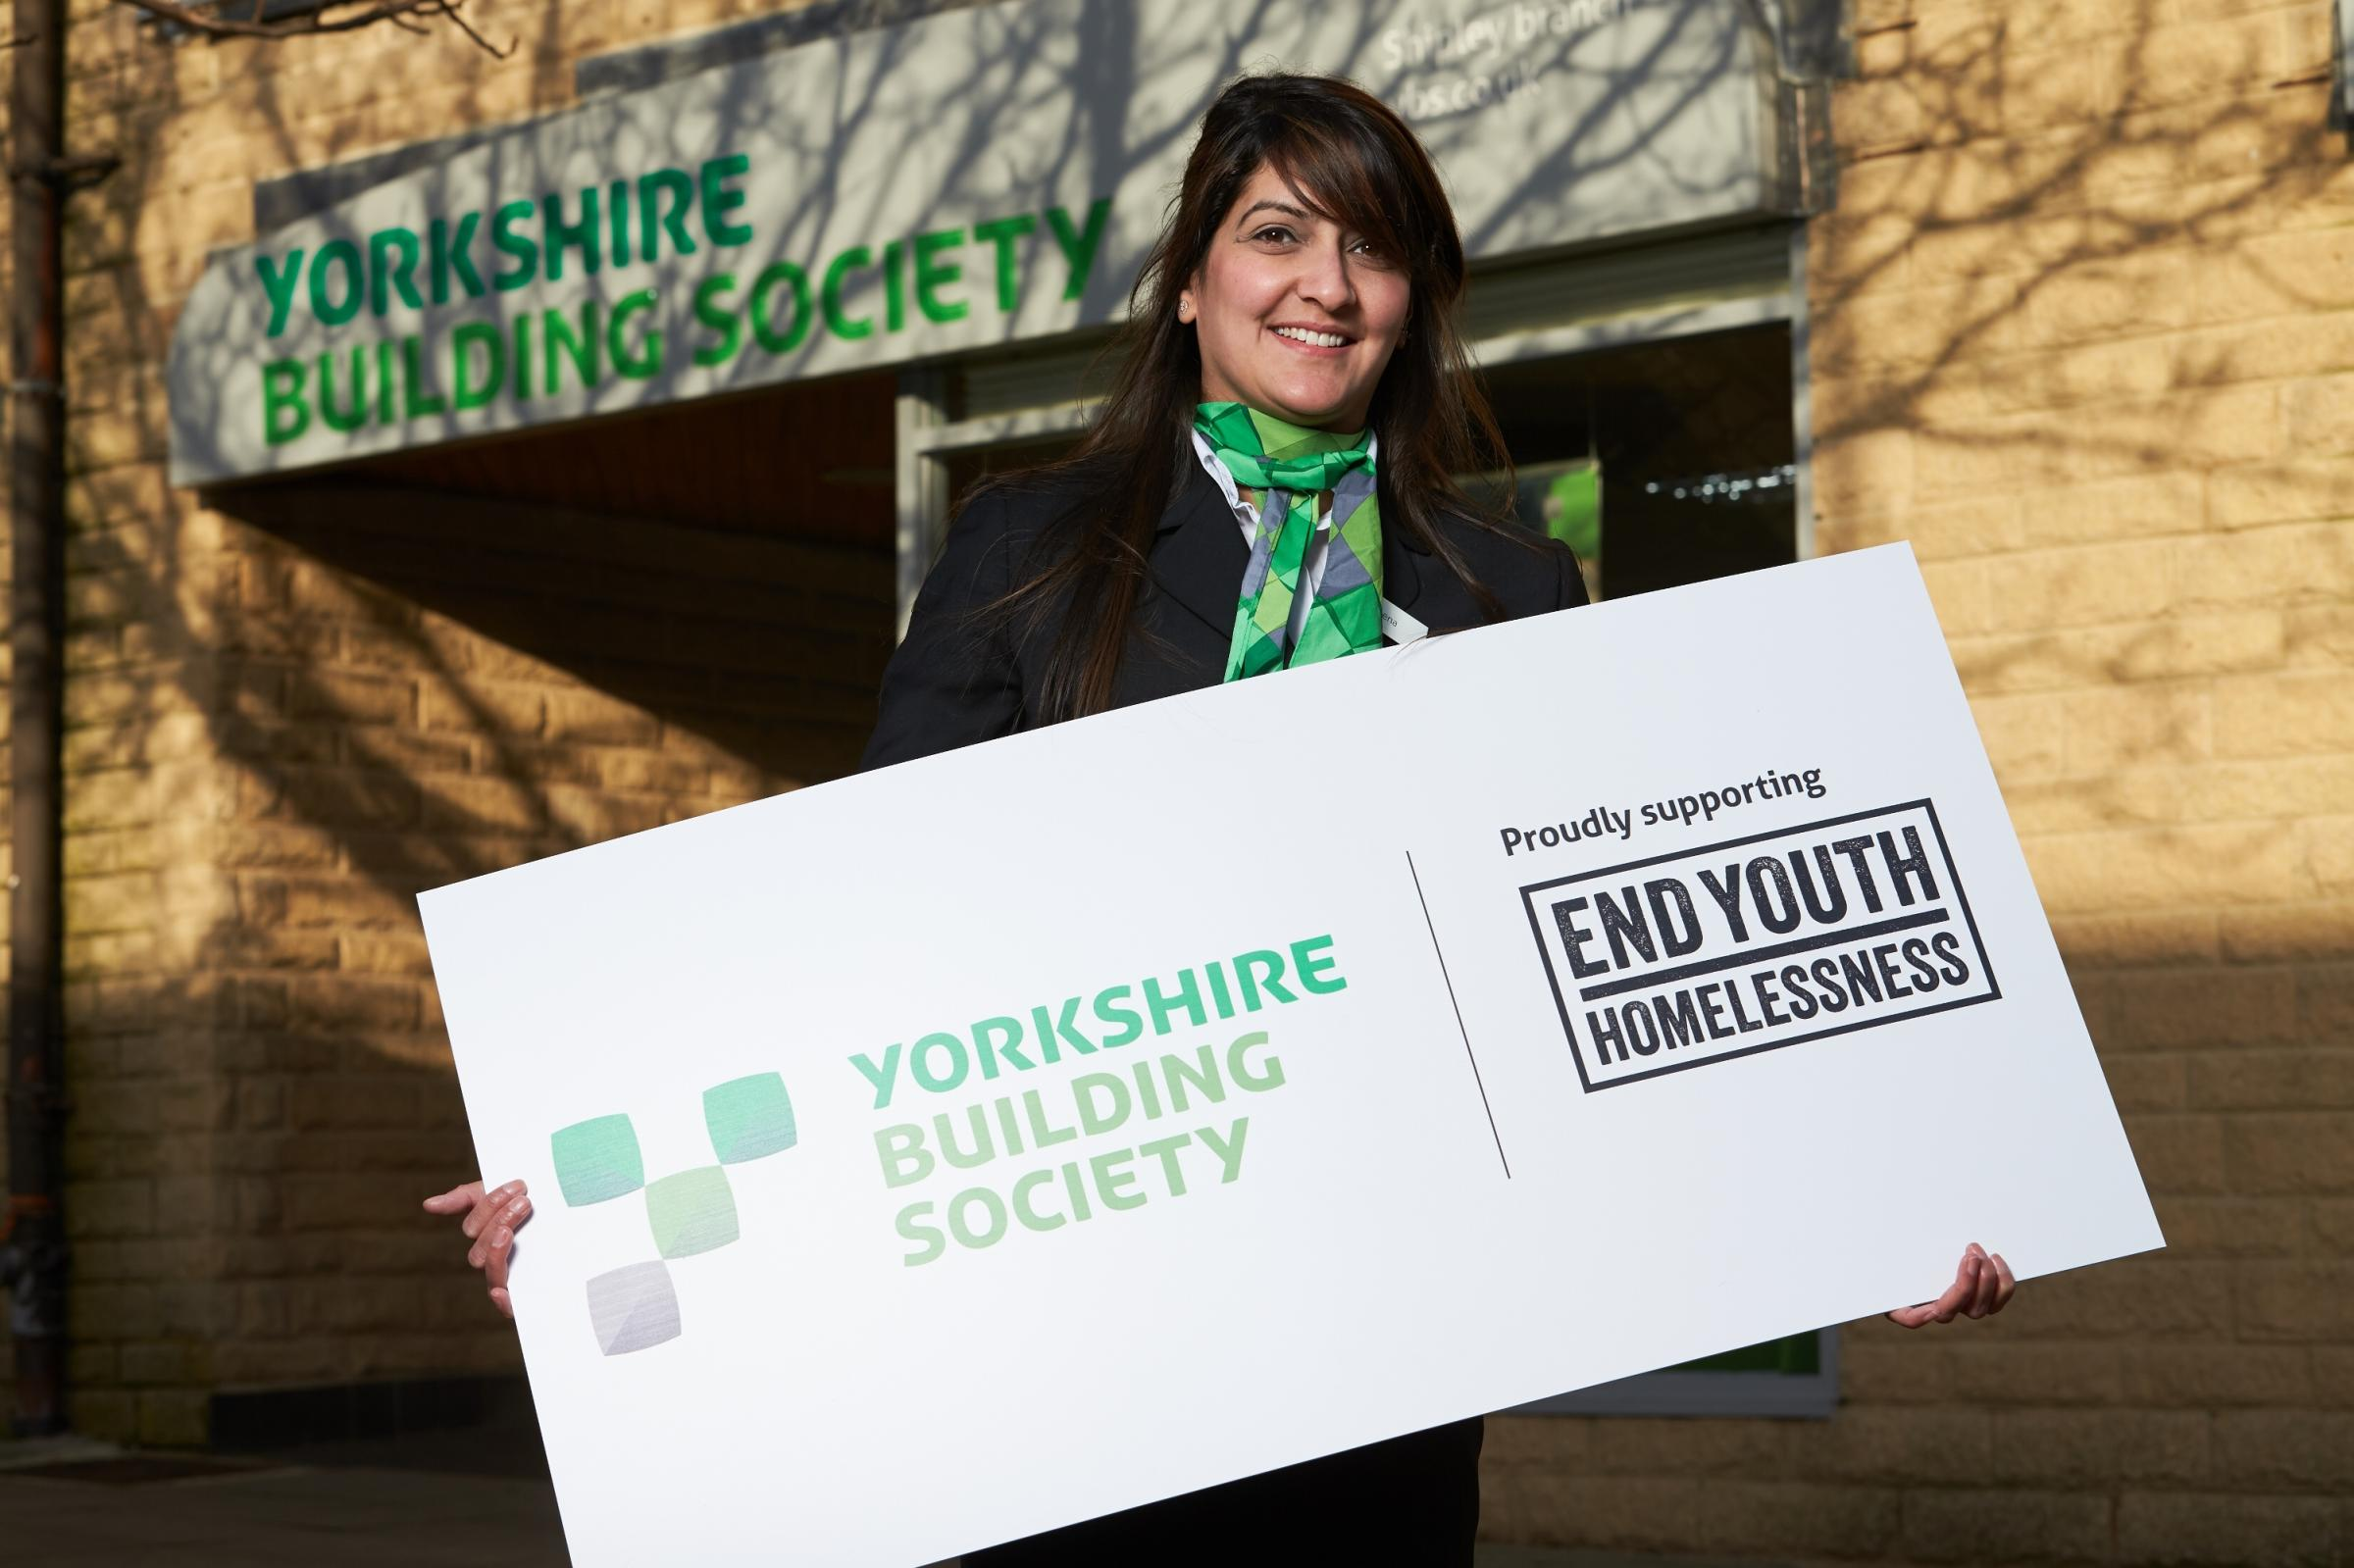 SUPPORT: Safeena Shafiq of Yorkshire Building Society. R. Pipe Insurance Consultants of Maldon High Street, an agency of YBS, is supporting their end youth homelessness campaign